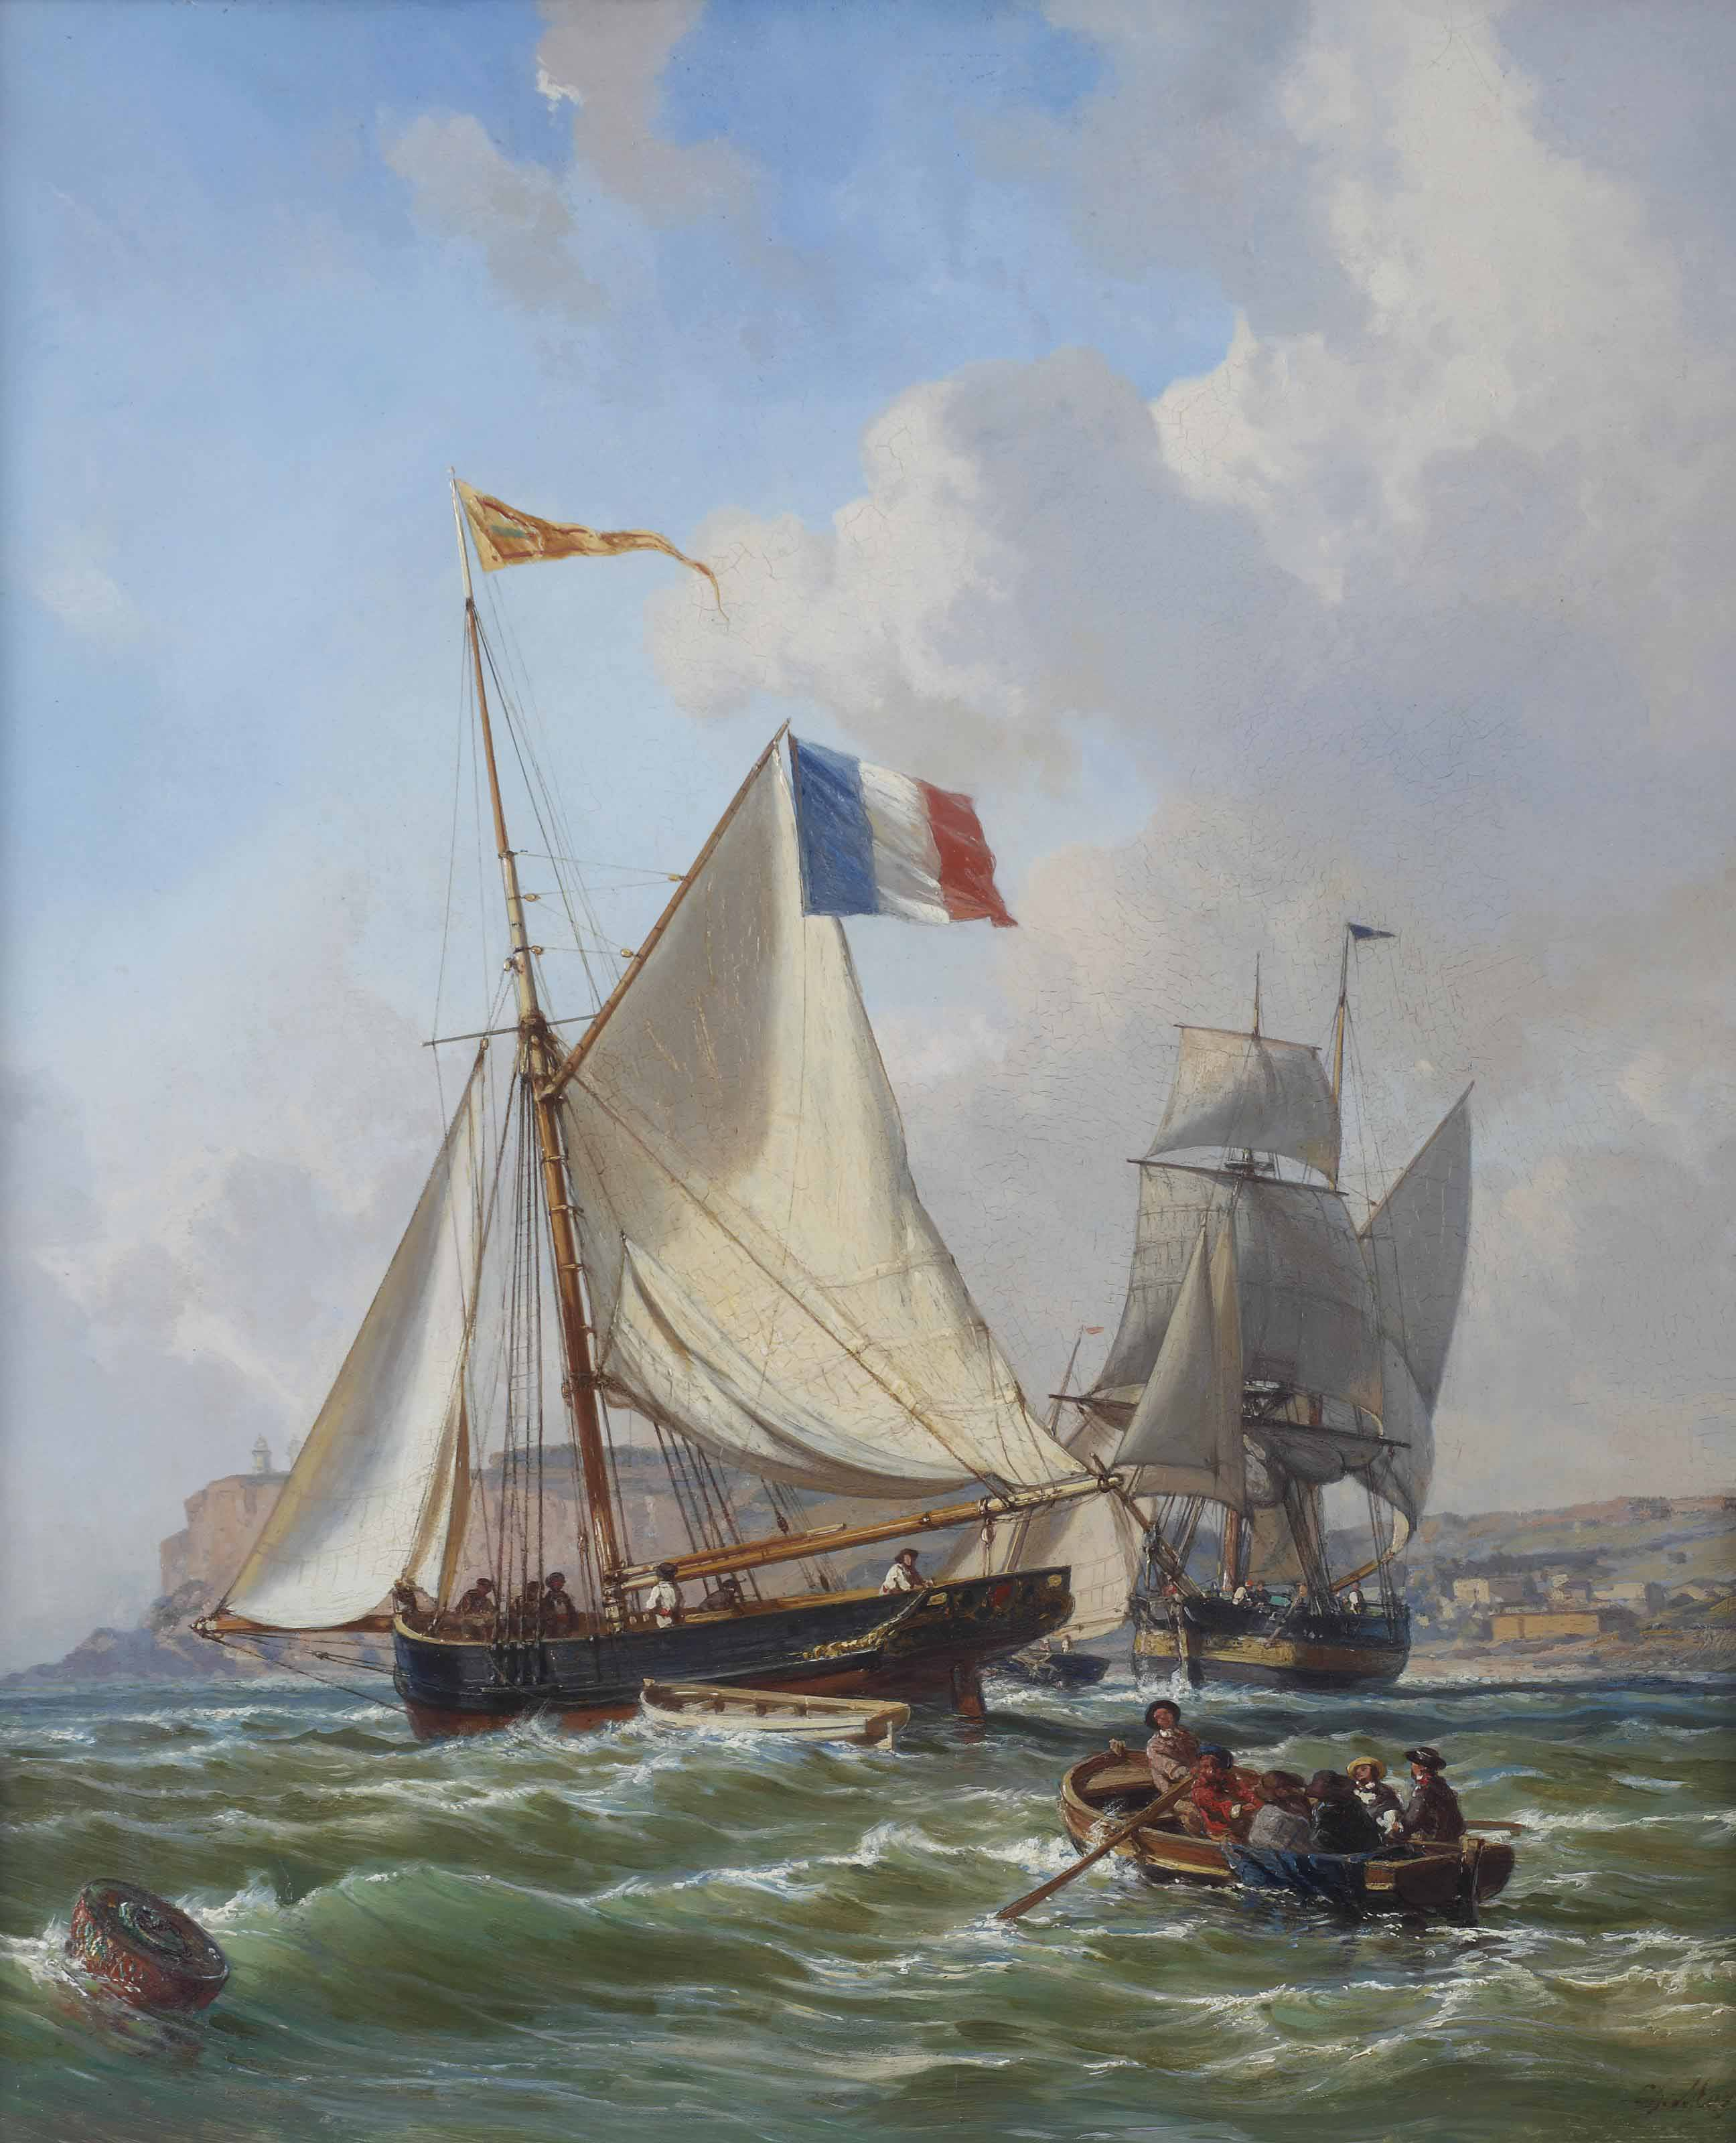 Preparing for a sailing trip near the coast of Normandy